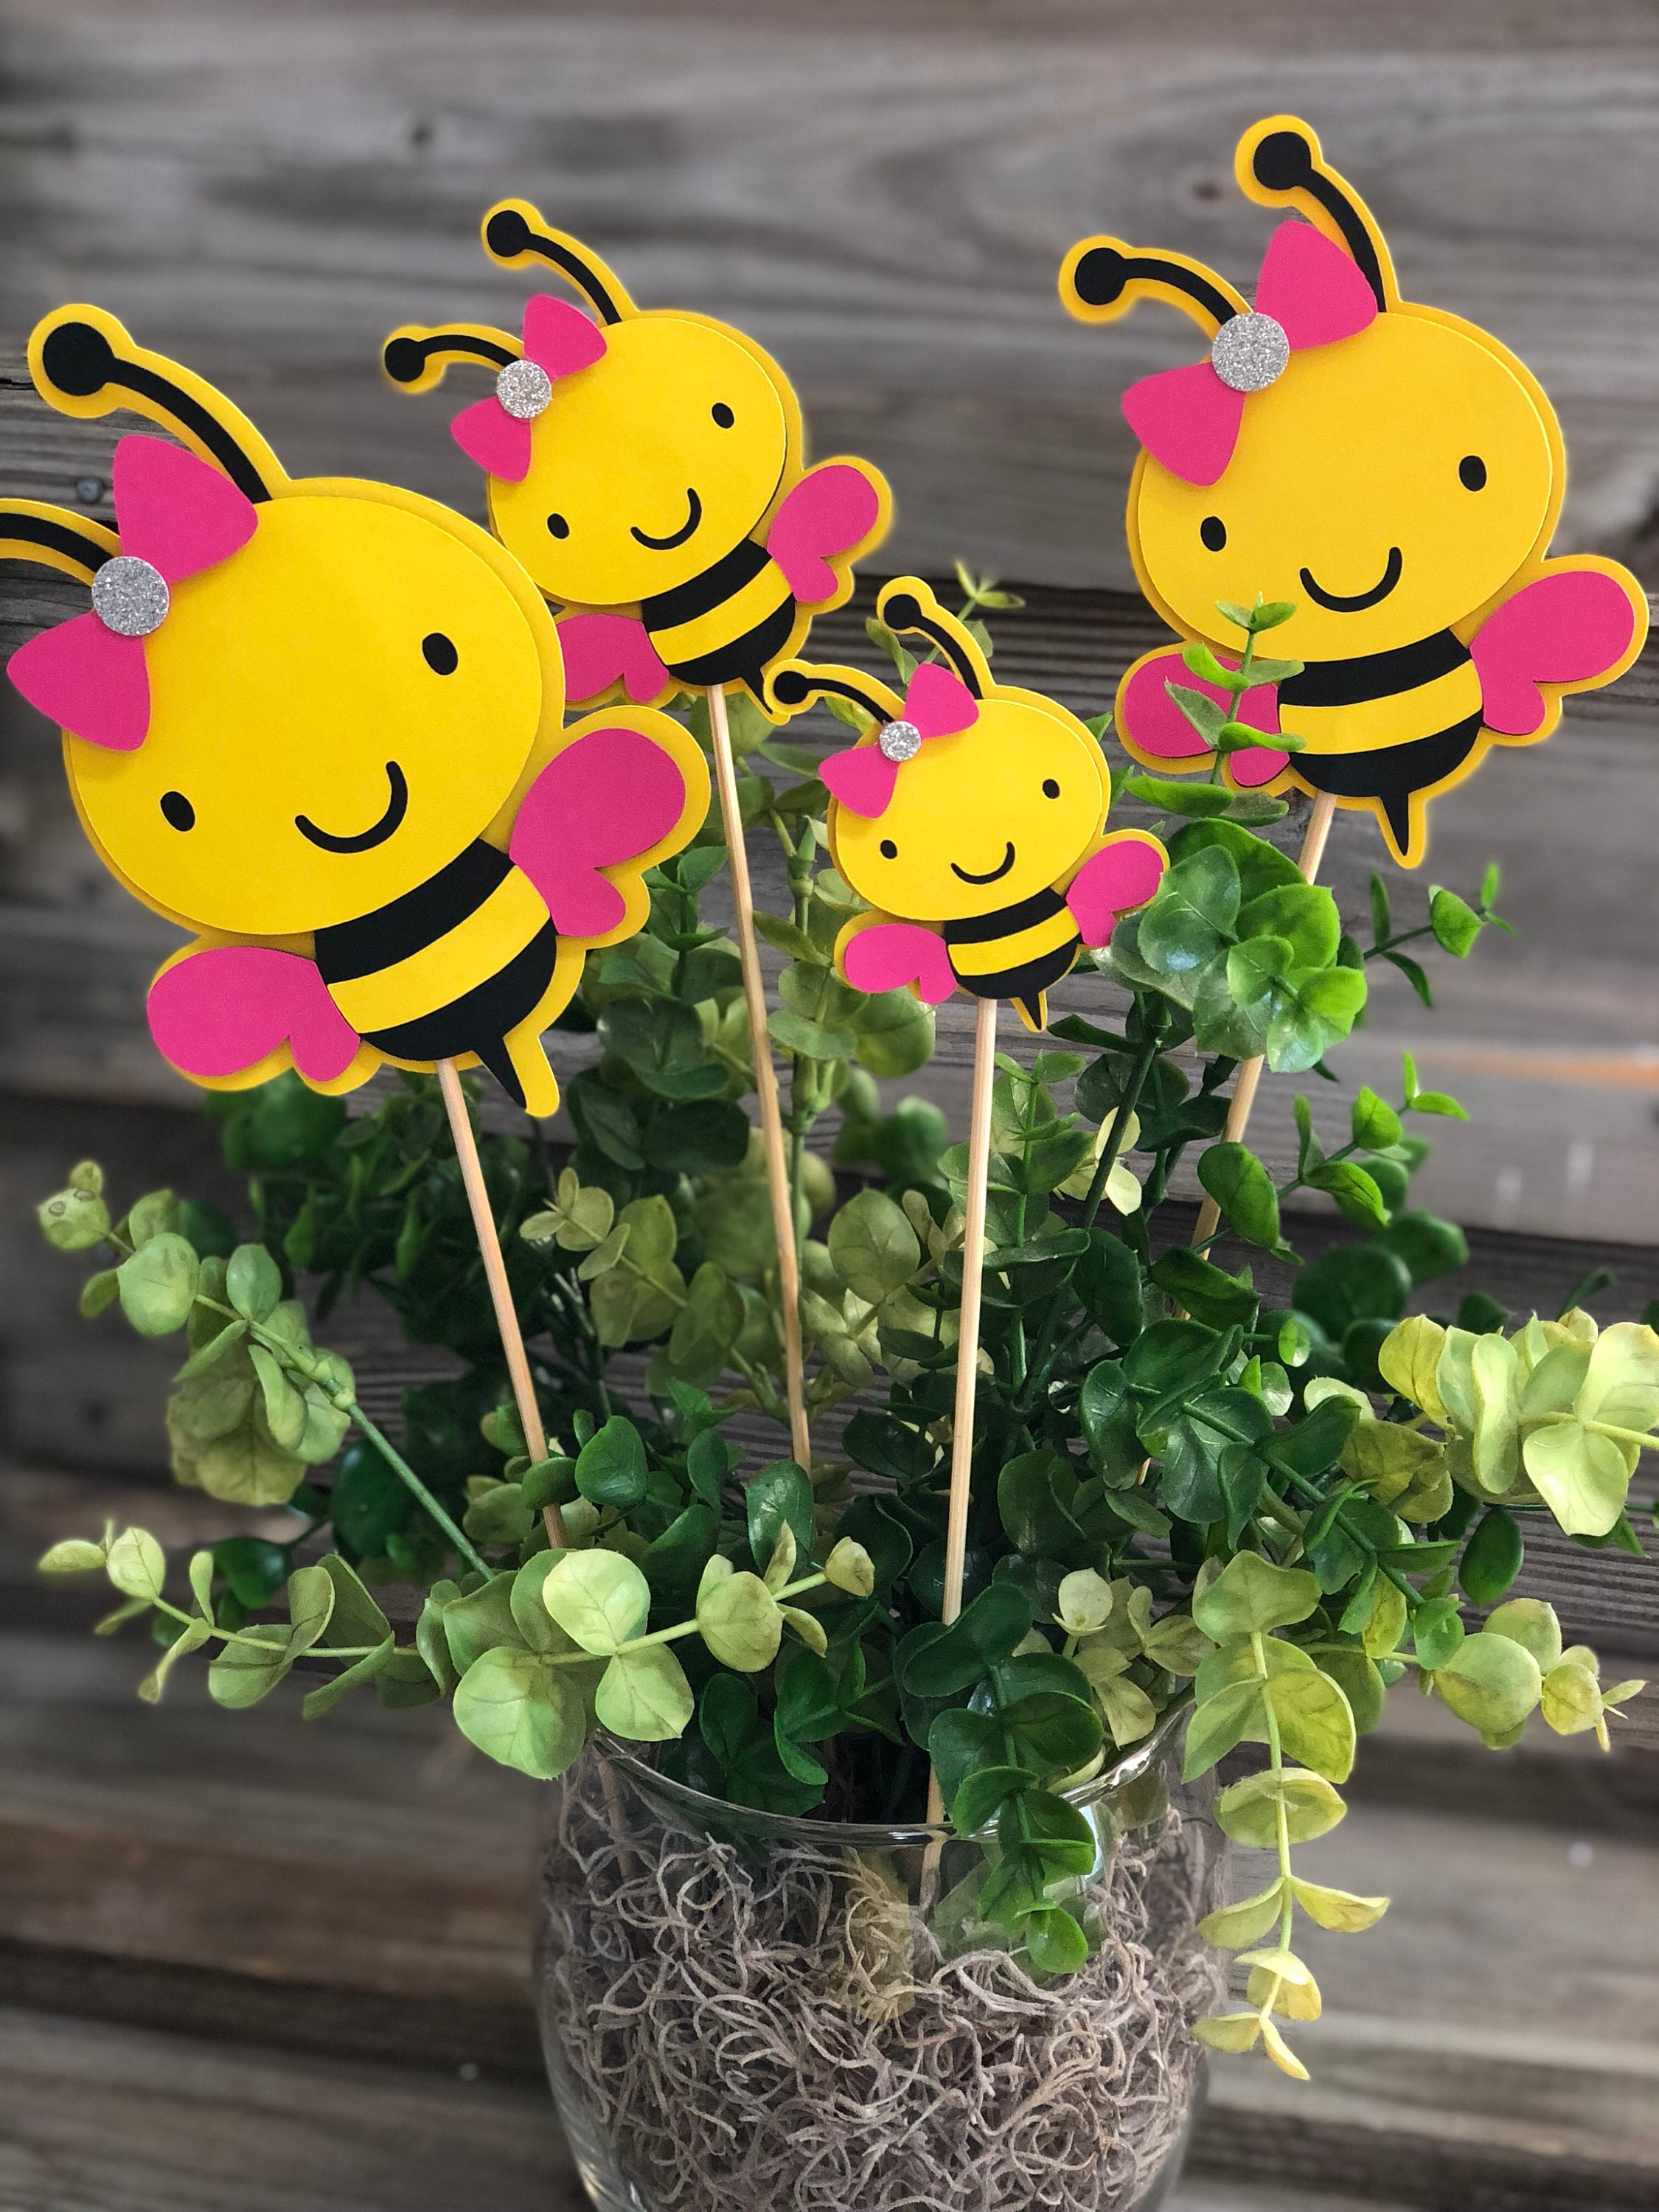 Set Of 6 Yellow Black And Fuchsia Bumble Bee Decorations On